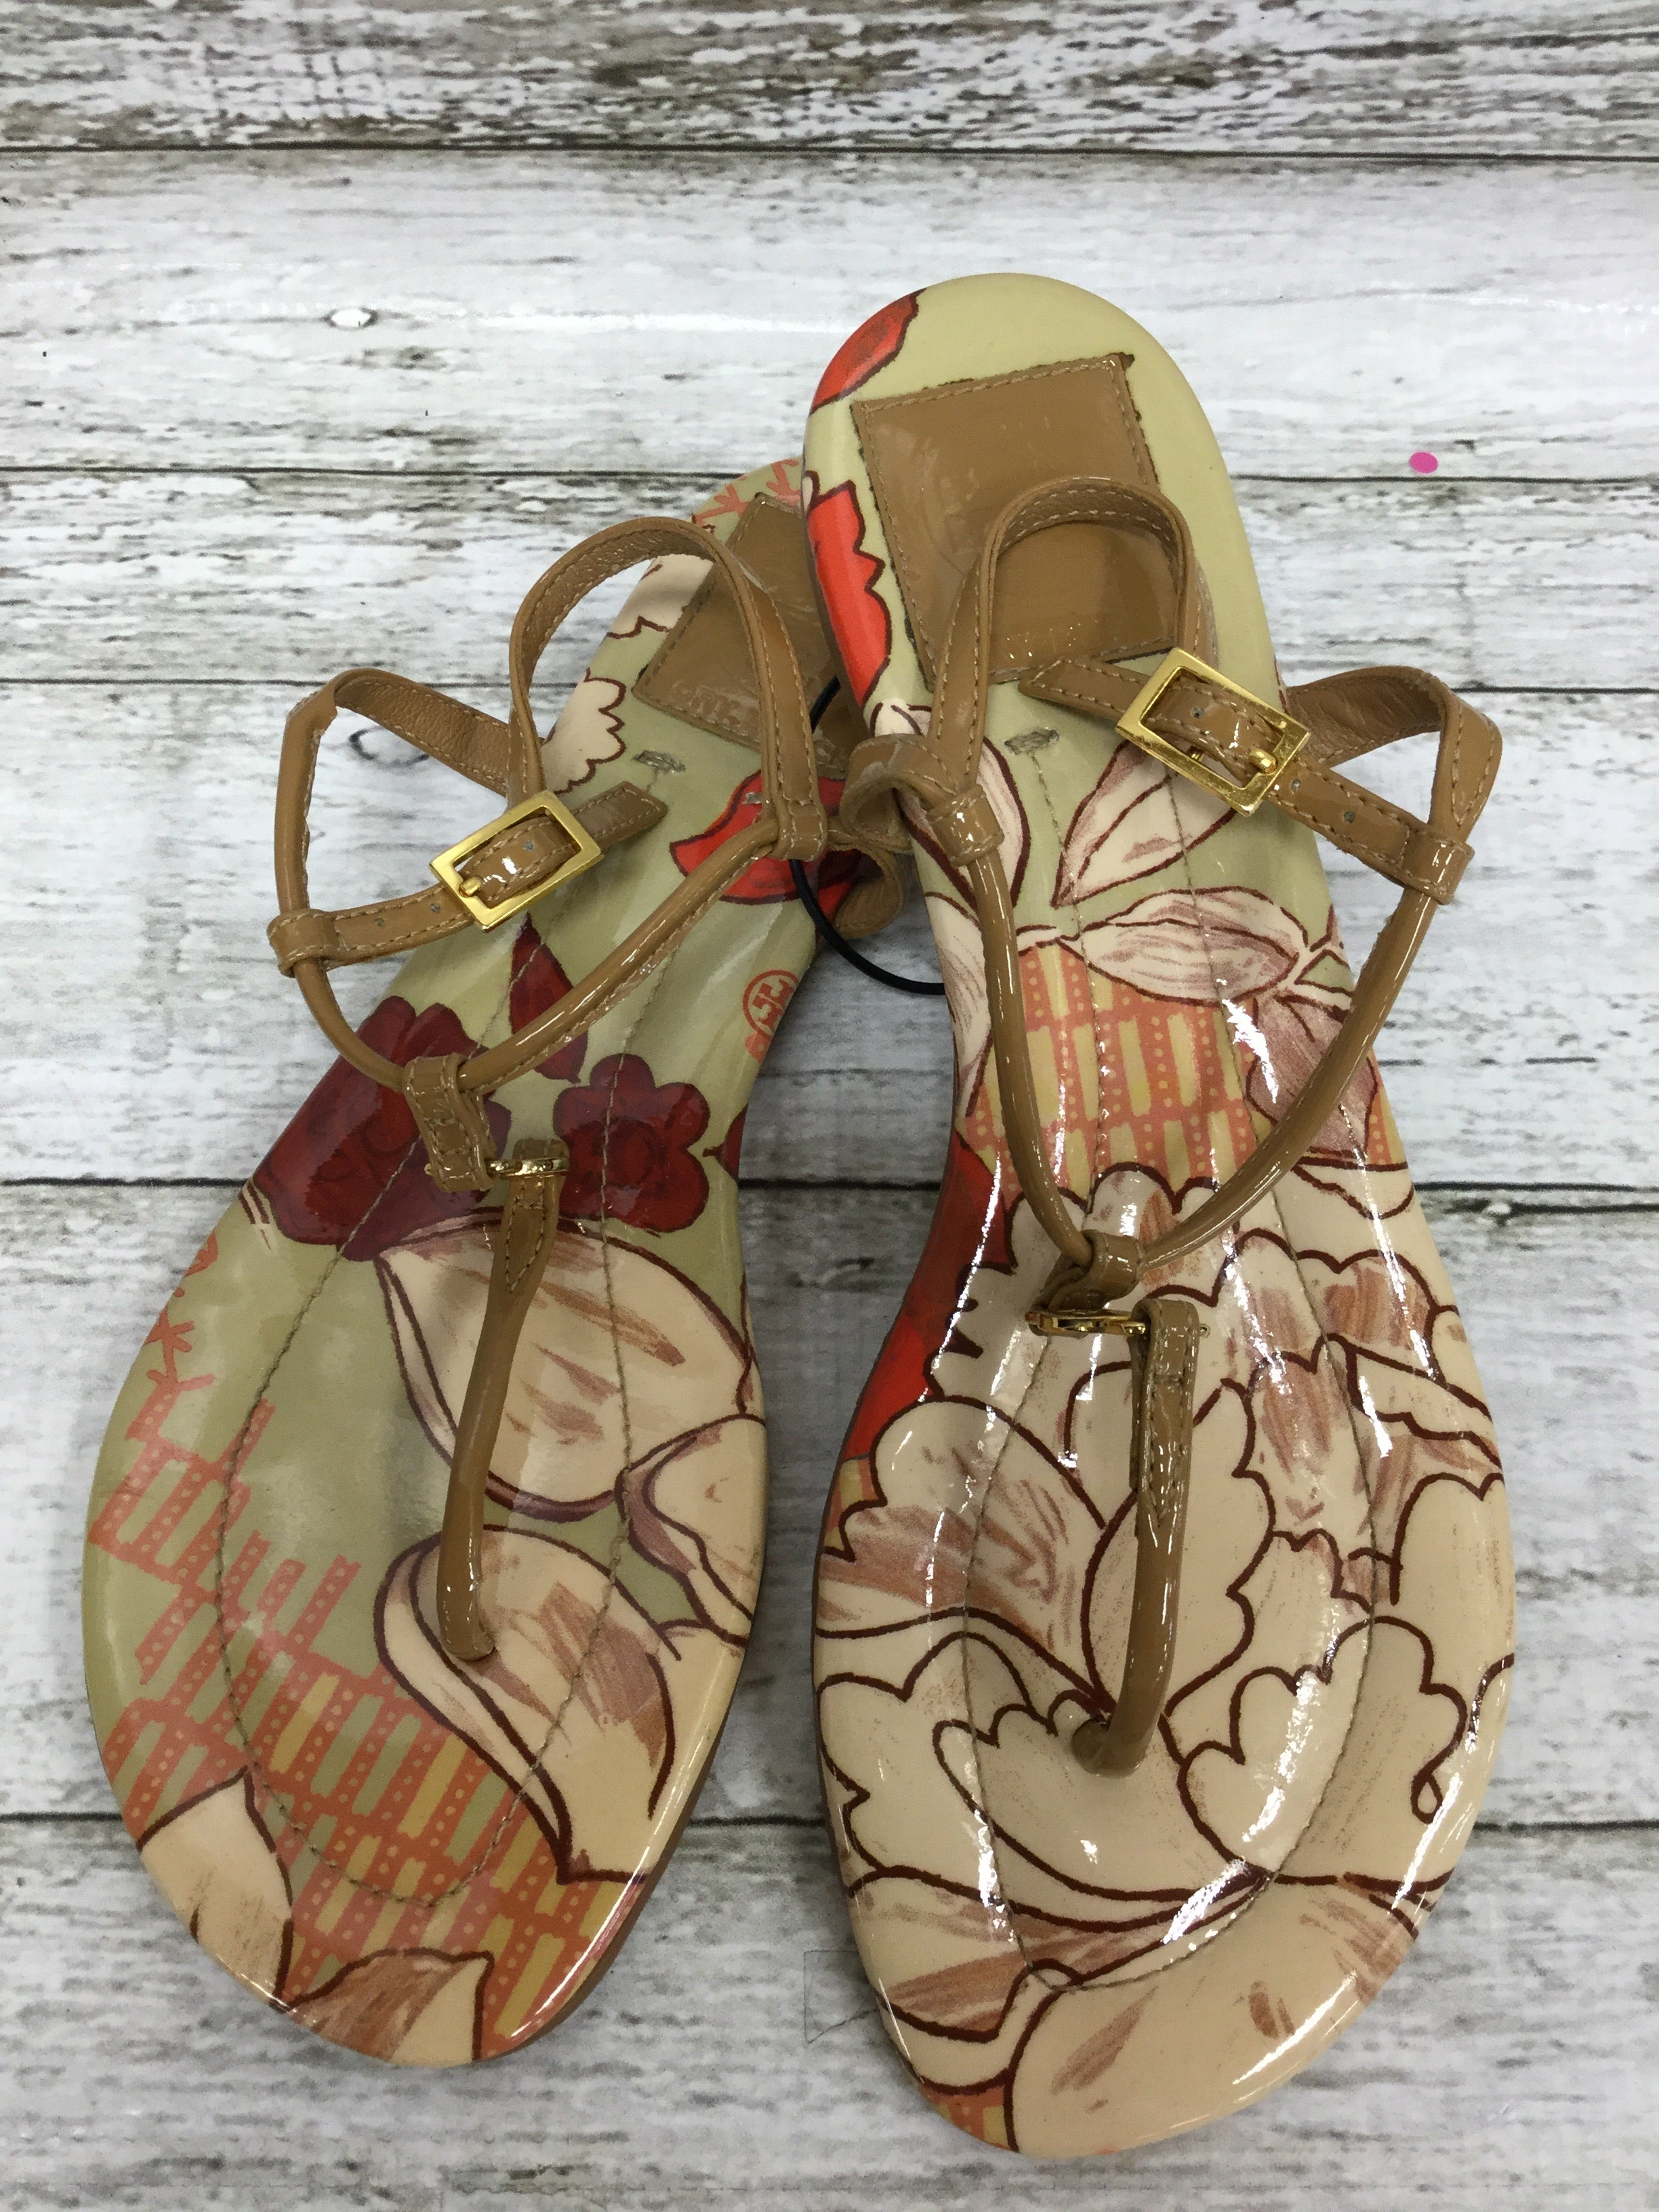 Primary Photo - BRAND: TORY BURCH , STYLE: SANDALS , COLOR: TAN , SIZE: 6 , SKU: 127-4876-7204, , THESE SANDALS ARE VERY CLEAN AND IN GREAT CONDITION!